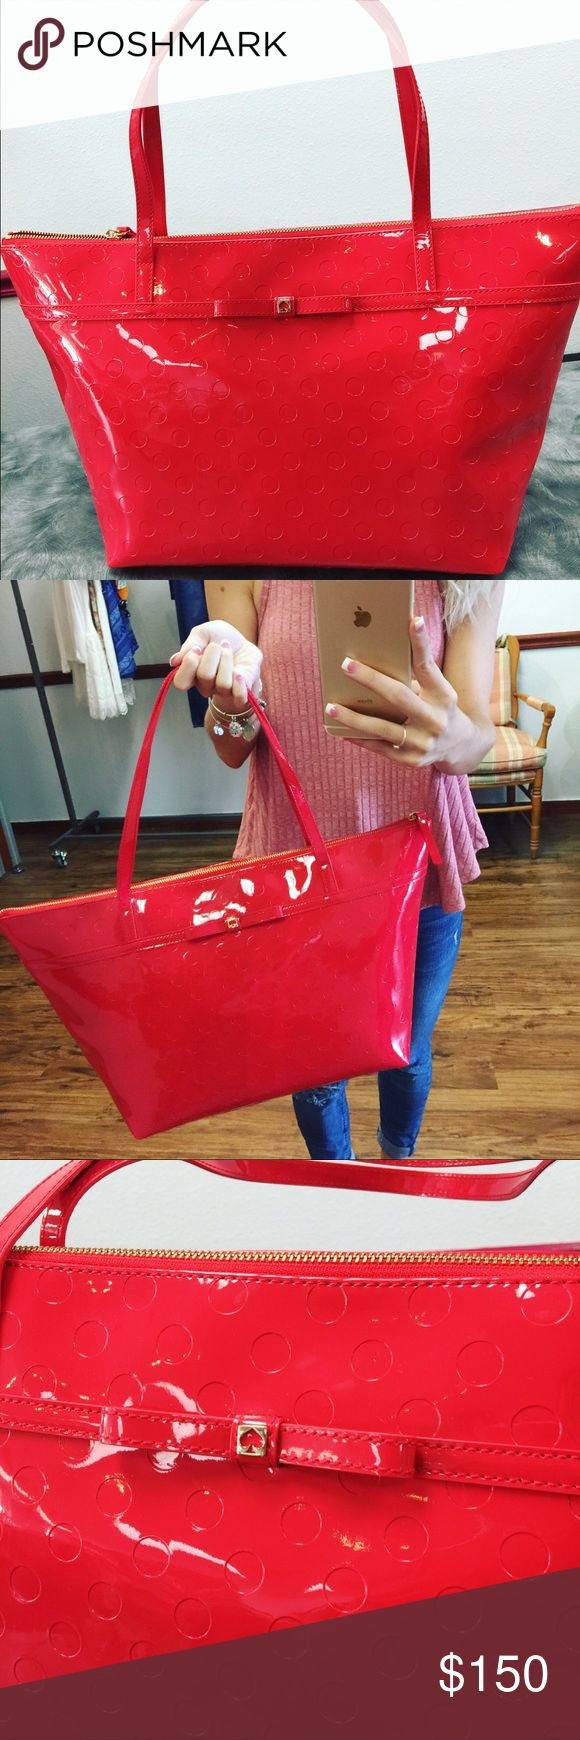 Kate Spade Red Polka Dot Tote Bag With Bow - NWT This Tote is GORGEOUS!! No trades. No flaw. This bag will not disappoint. kate spade Bags Totes